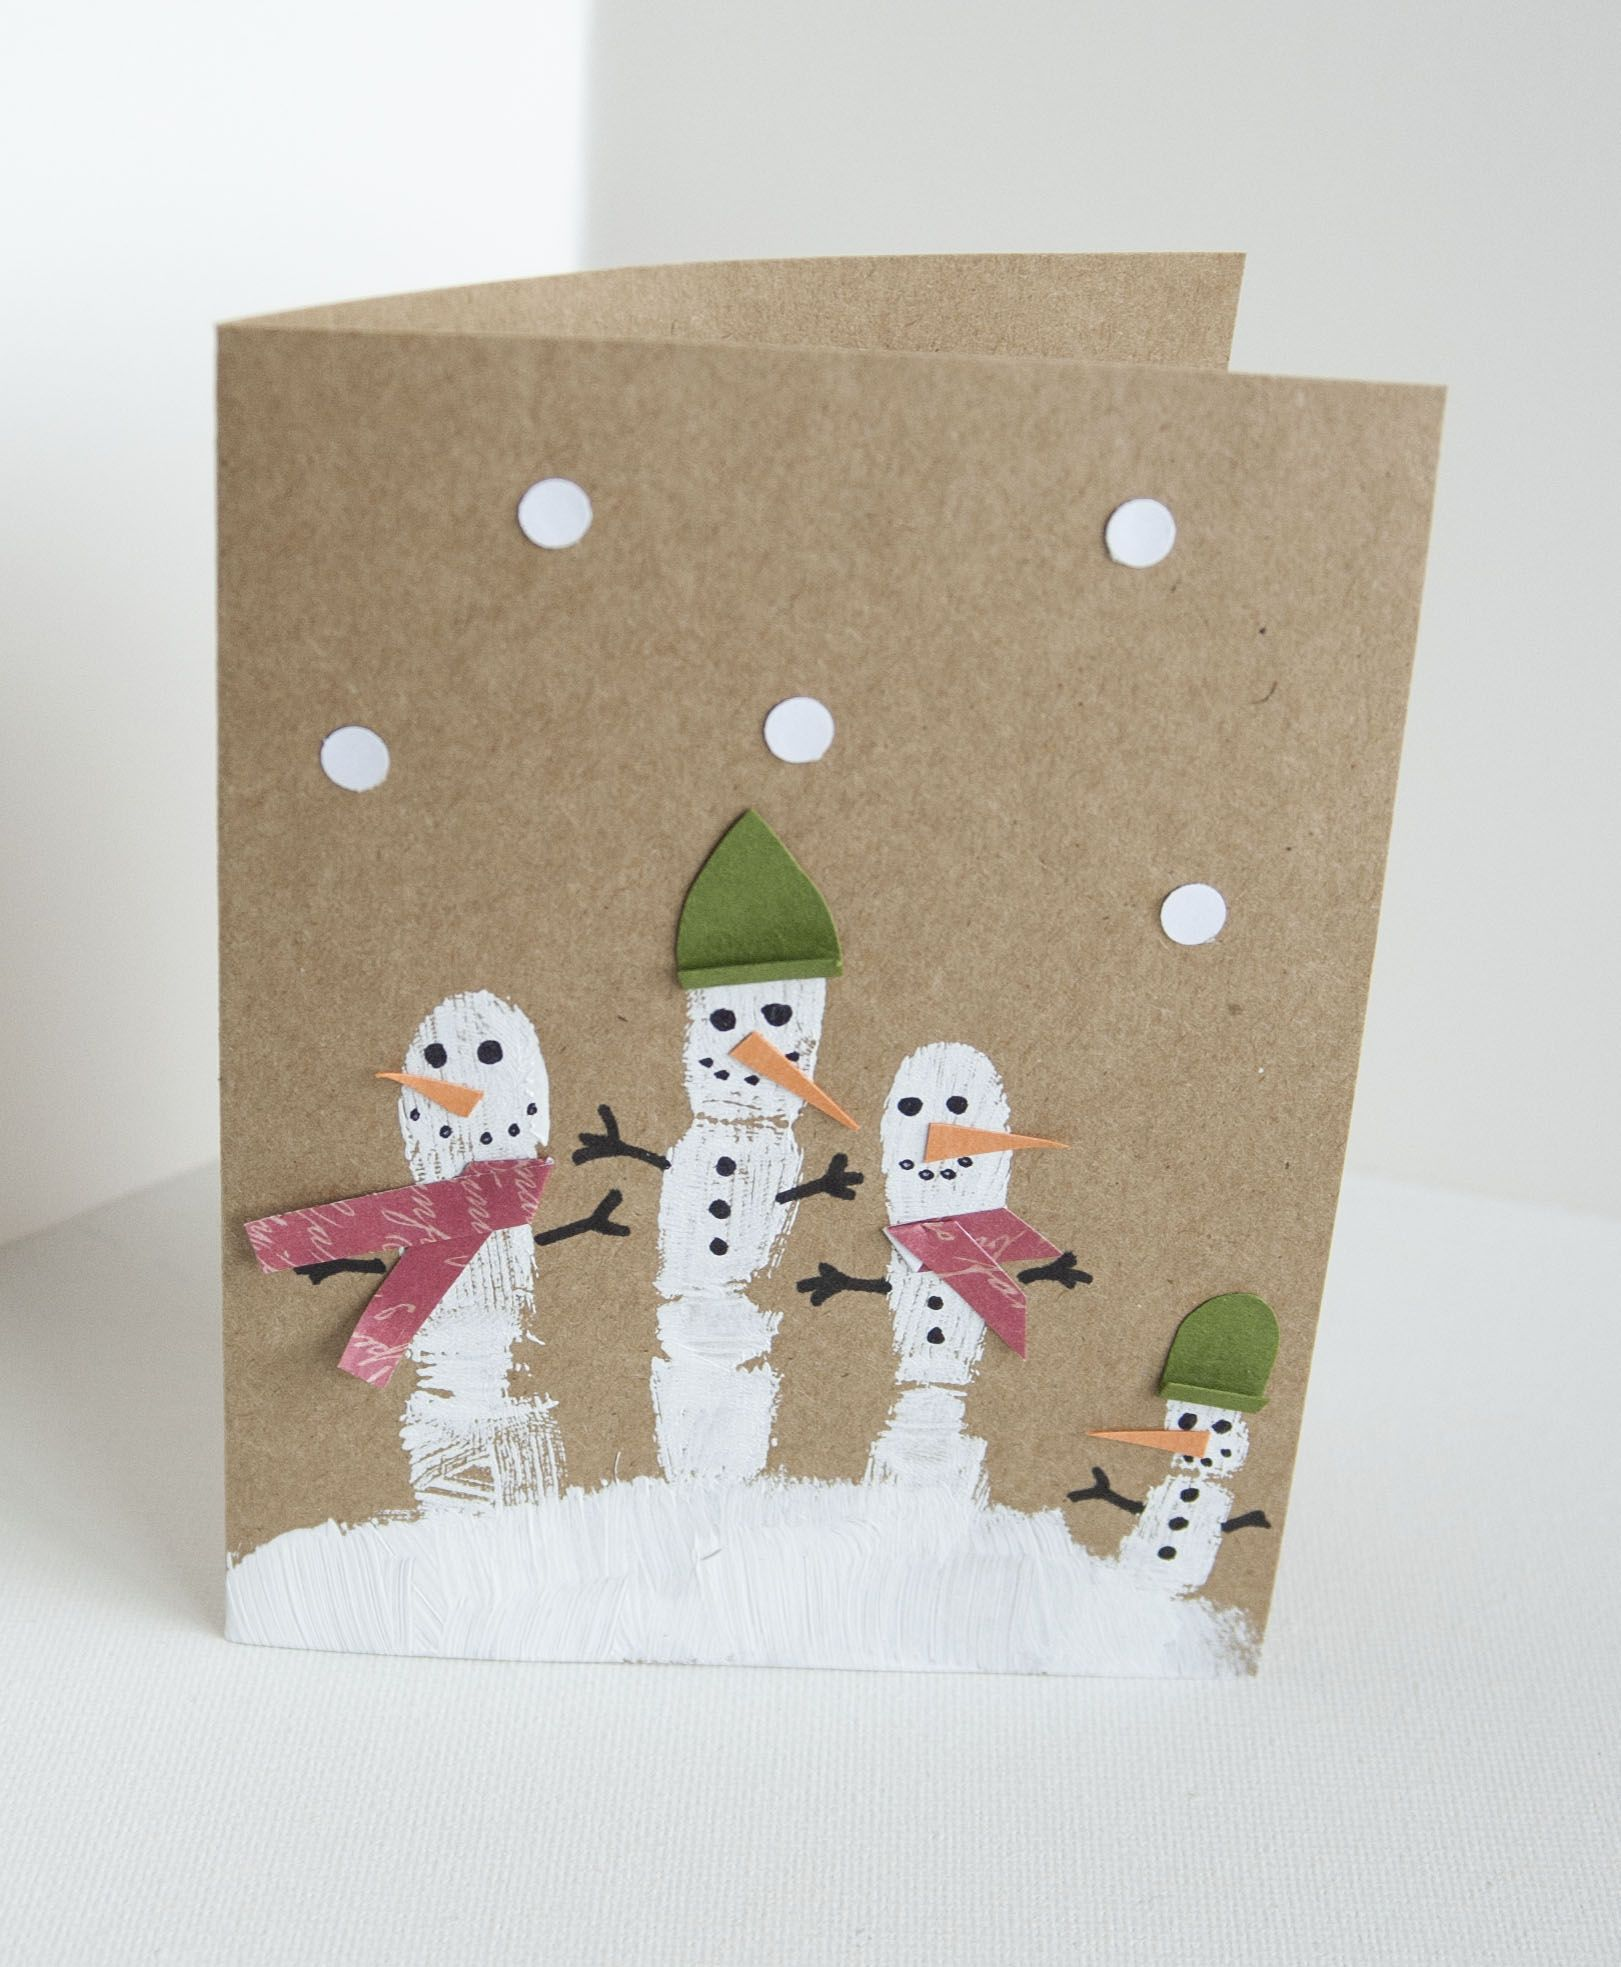 Snowman Christmas Cards Ideas.15 Awesome Christmas Cards To Make With Kids Christmas